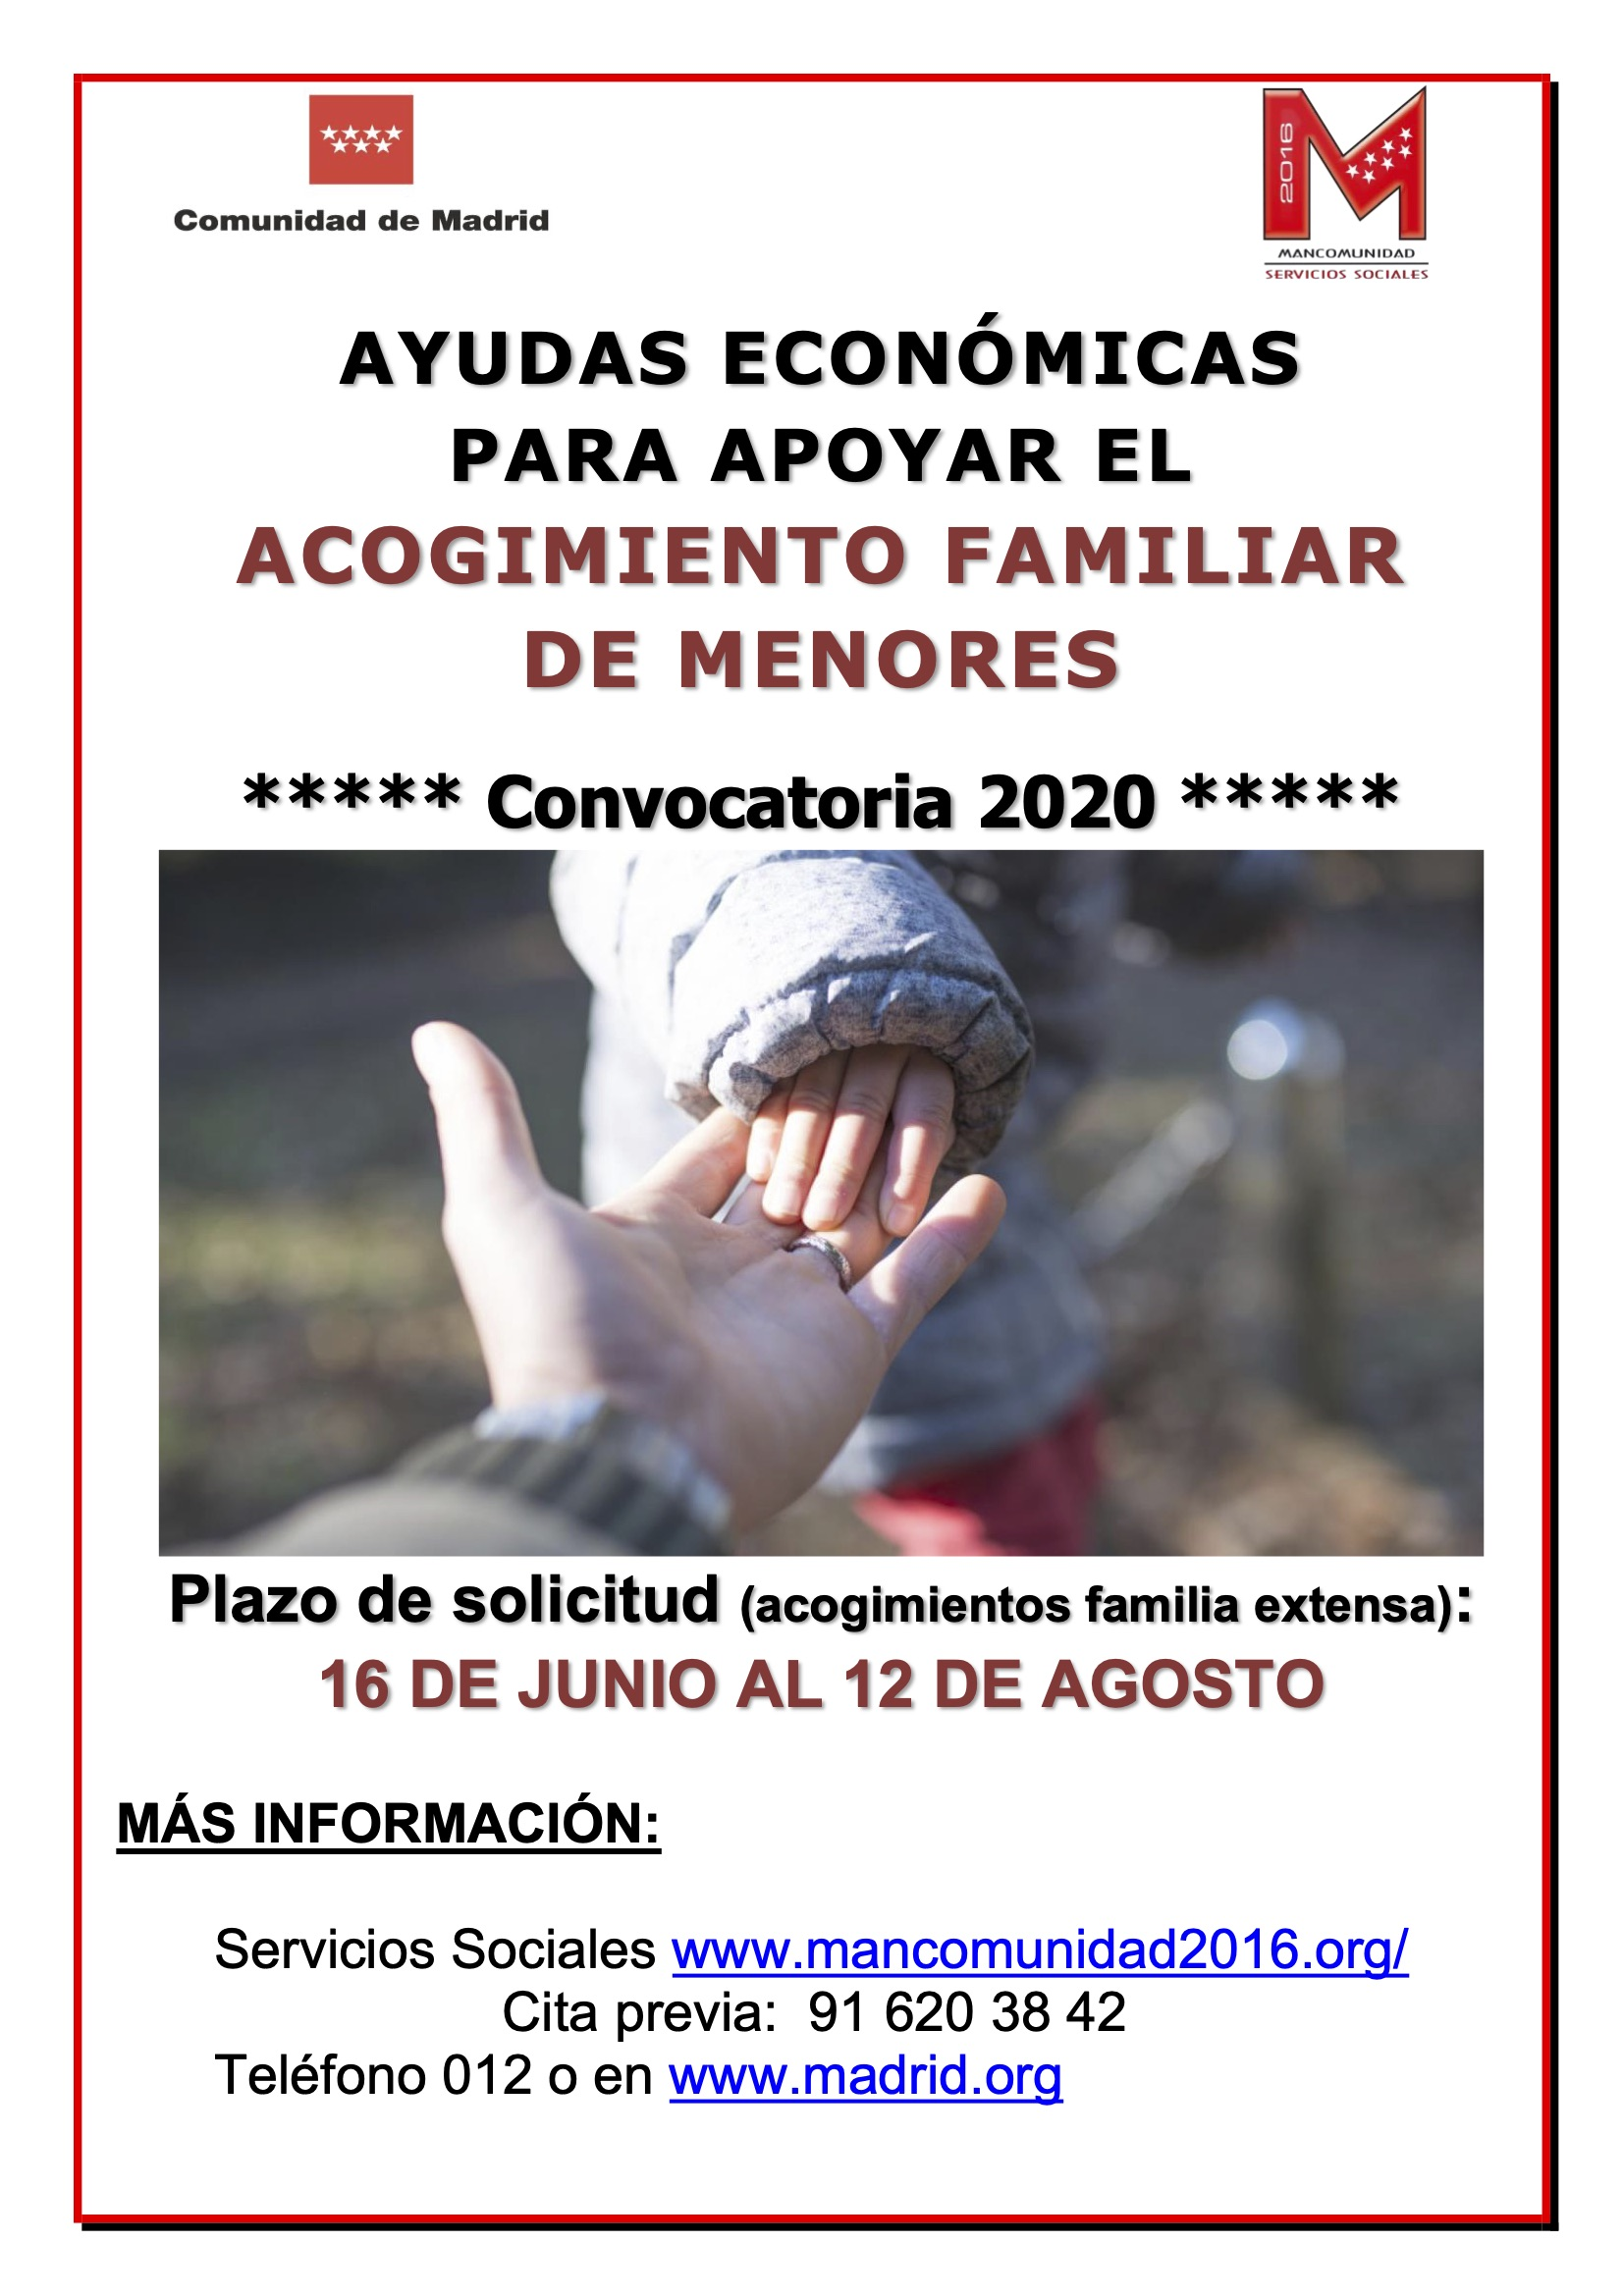 Cartel Acogimiento familiar menores 2020